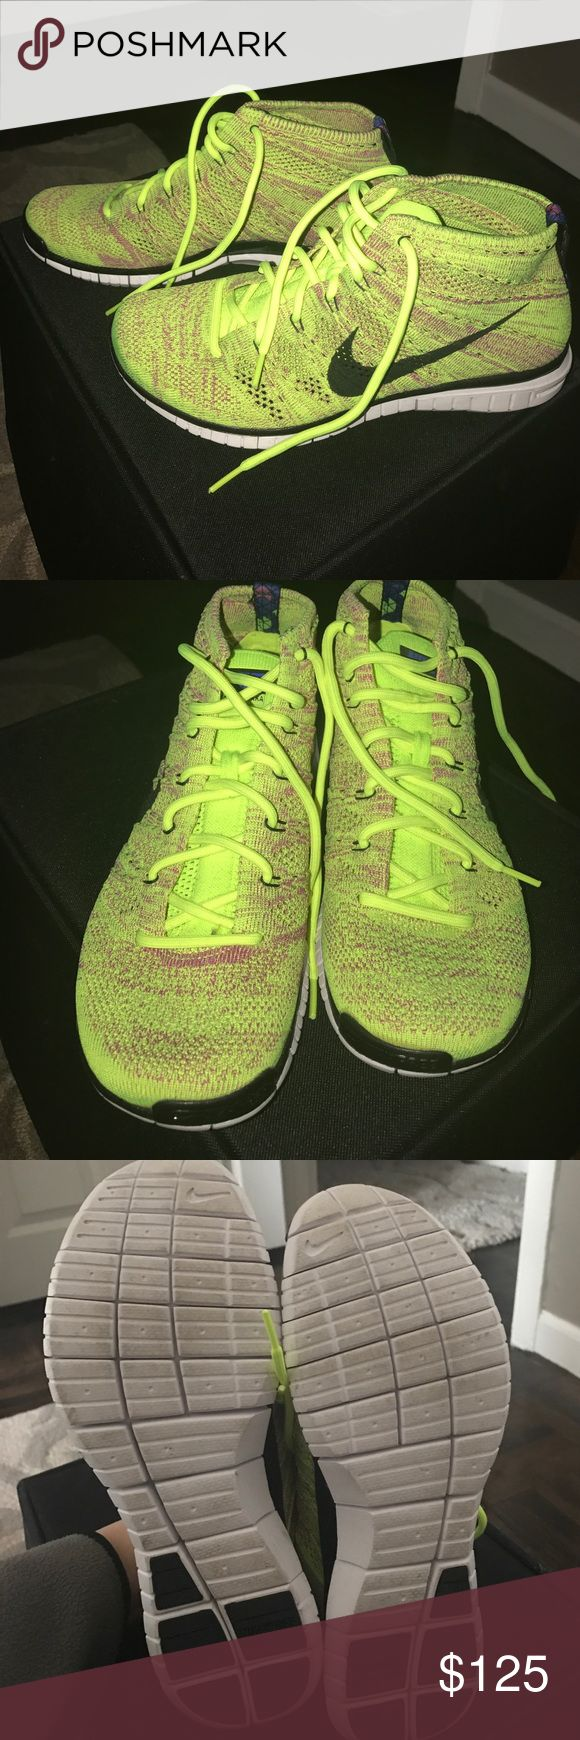 Nike Flyknit Chukka Sneakers Worn once. No box. Very comfortable and lightweight. Men's size 8. Women's 9/9.5. :) Nike Shoes Sneakers